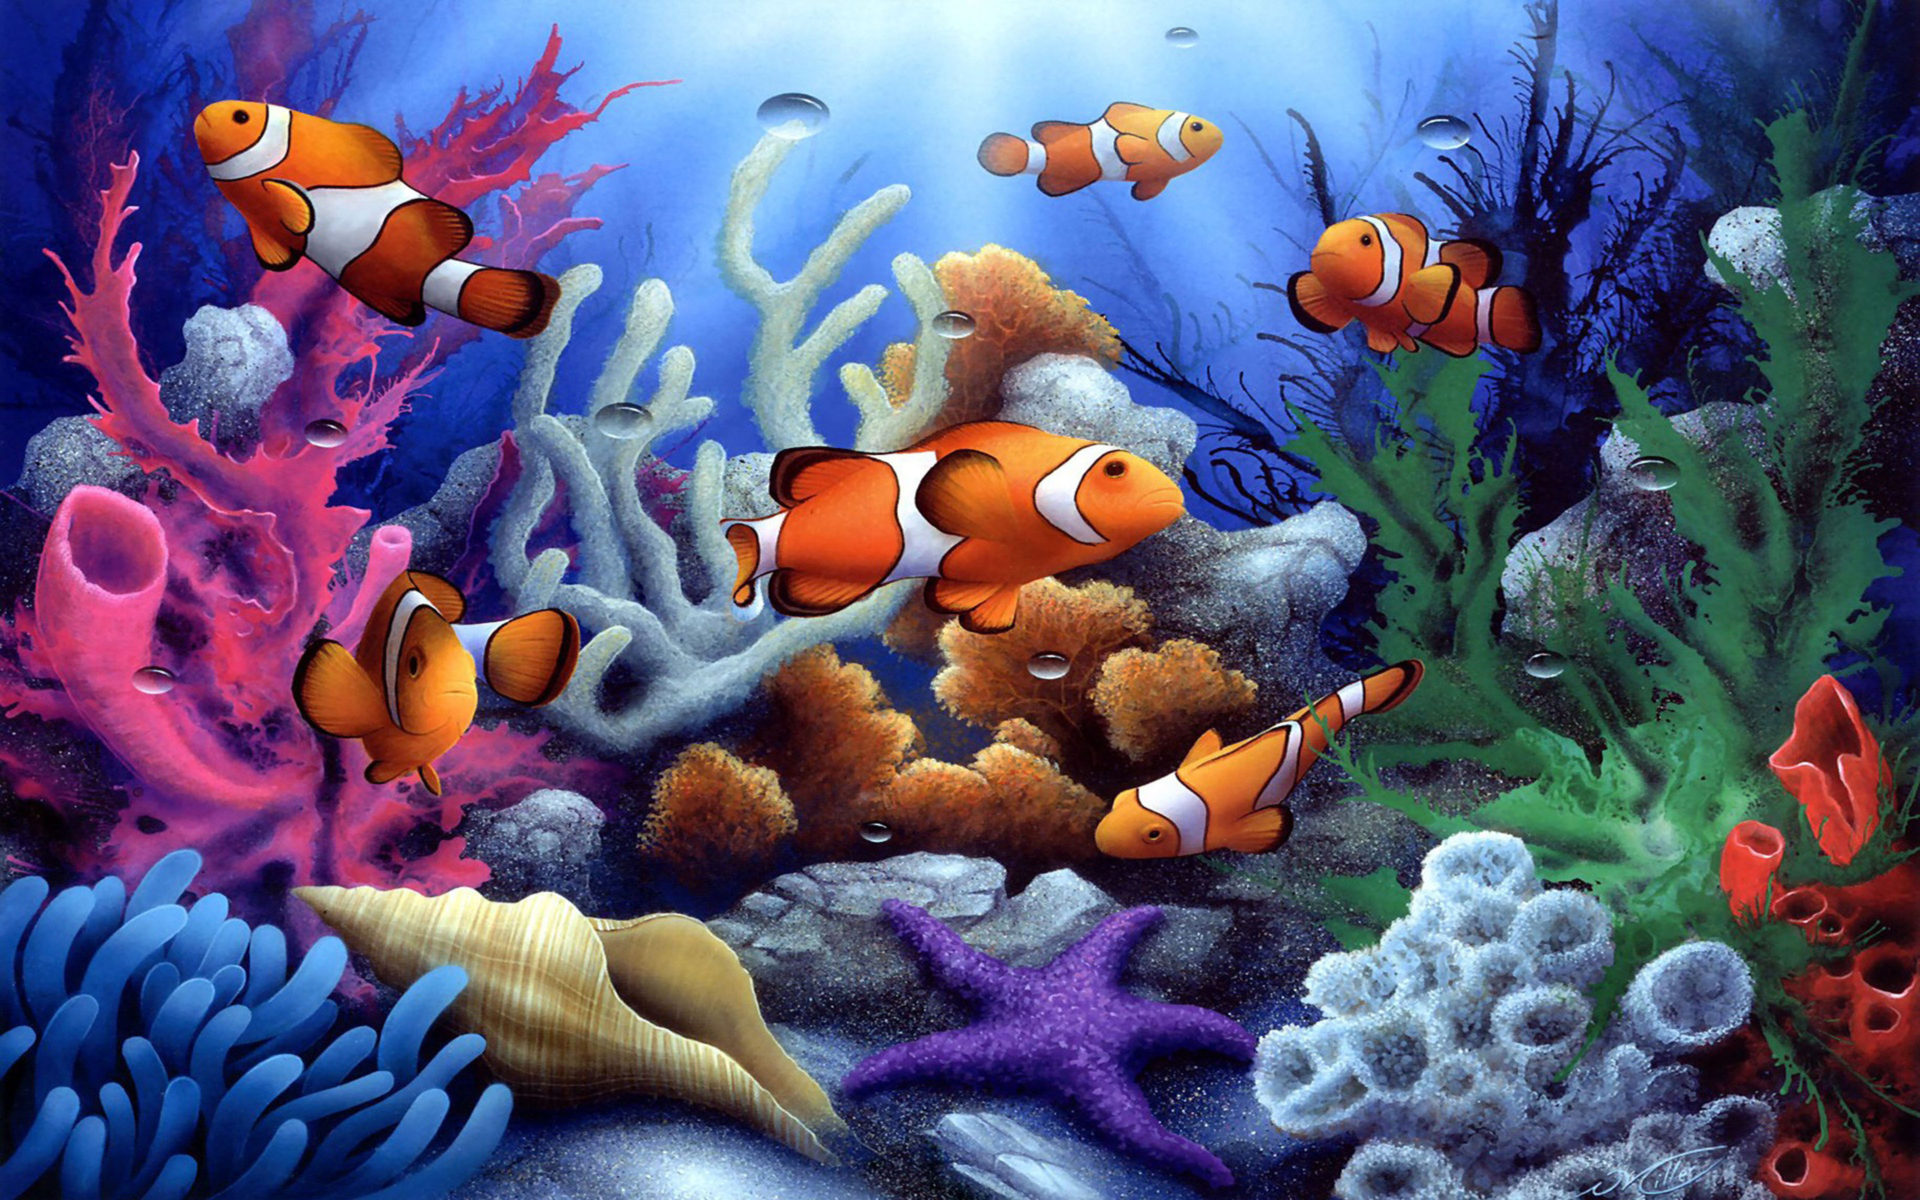 3d Moving Wallpapers For Pc Free Download Colorful Underwater Coral And Fish 1600x1200